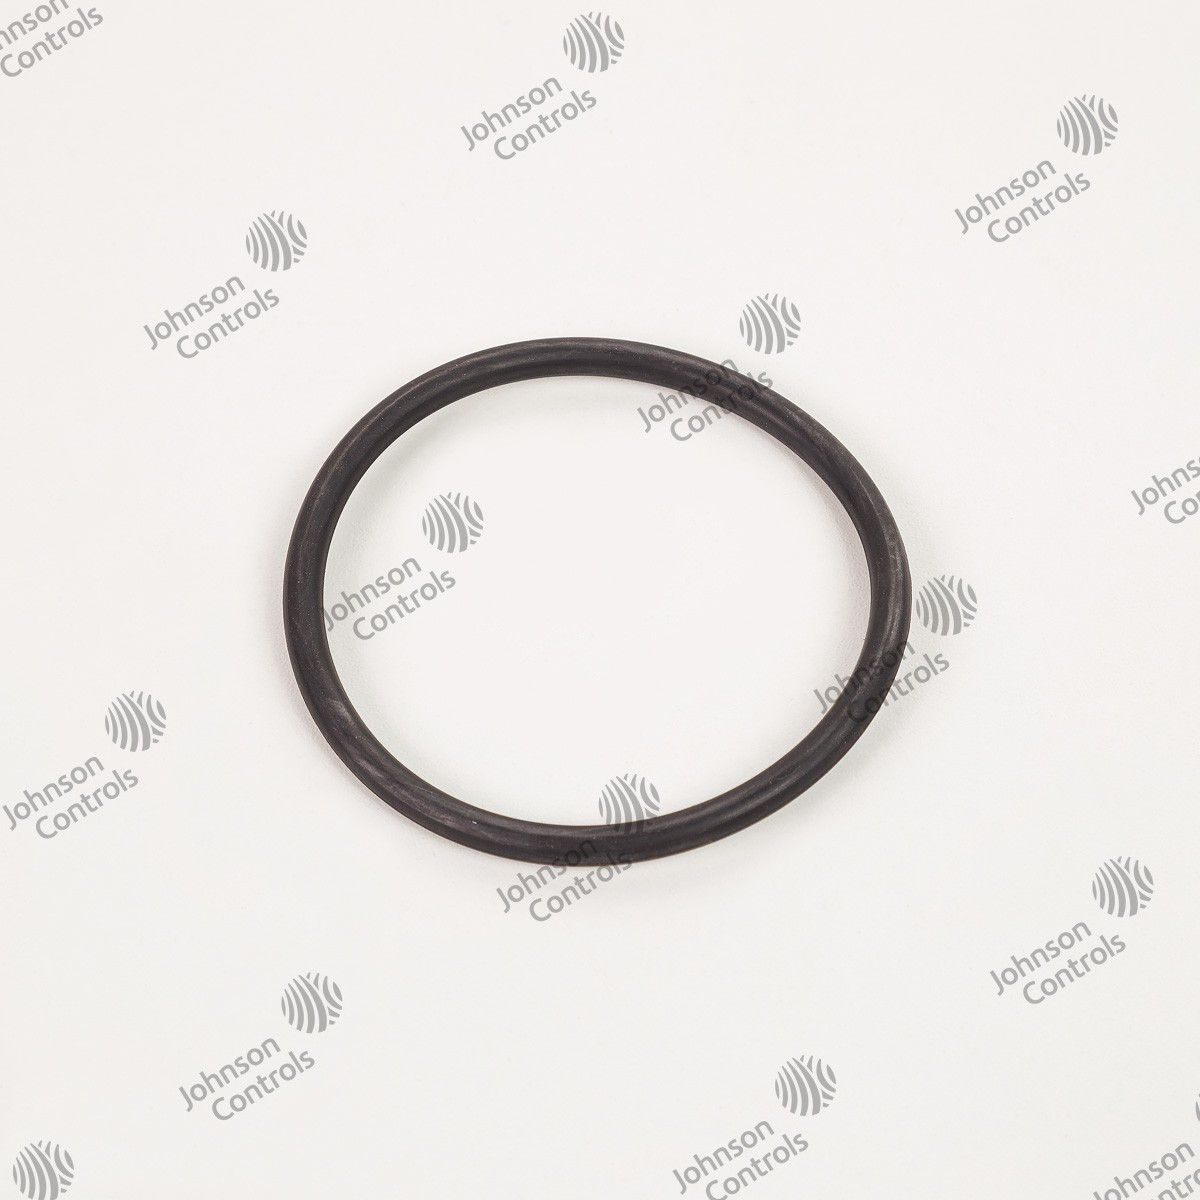 ANEL ORING 72,39/5,33 2347 - 1331+154